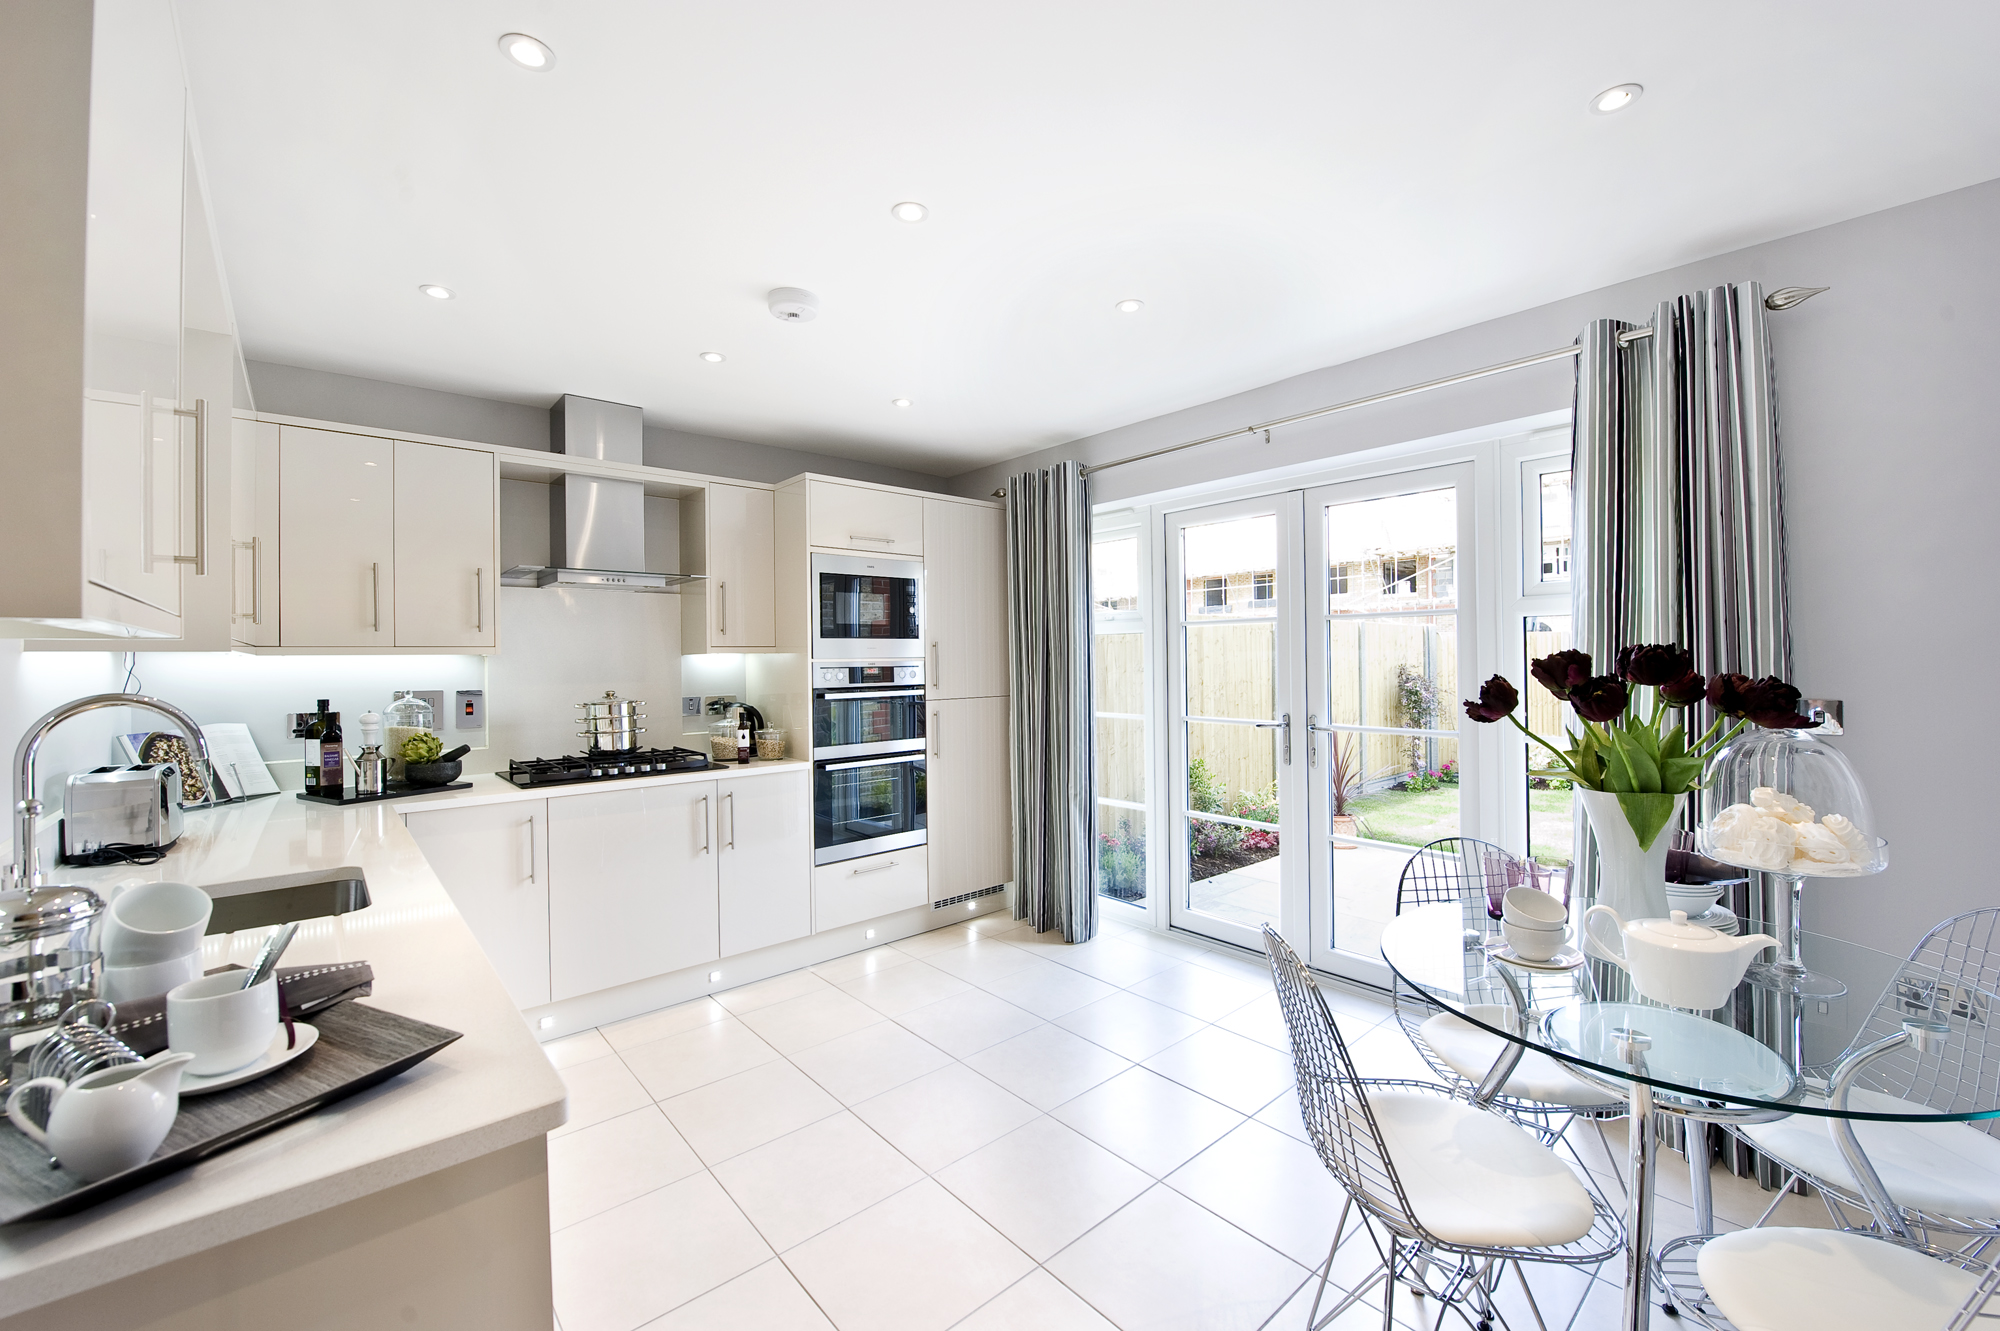 Only 3 homes remaining at cranbourne mews eton wick - Show picture of kitchen ...